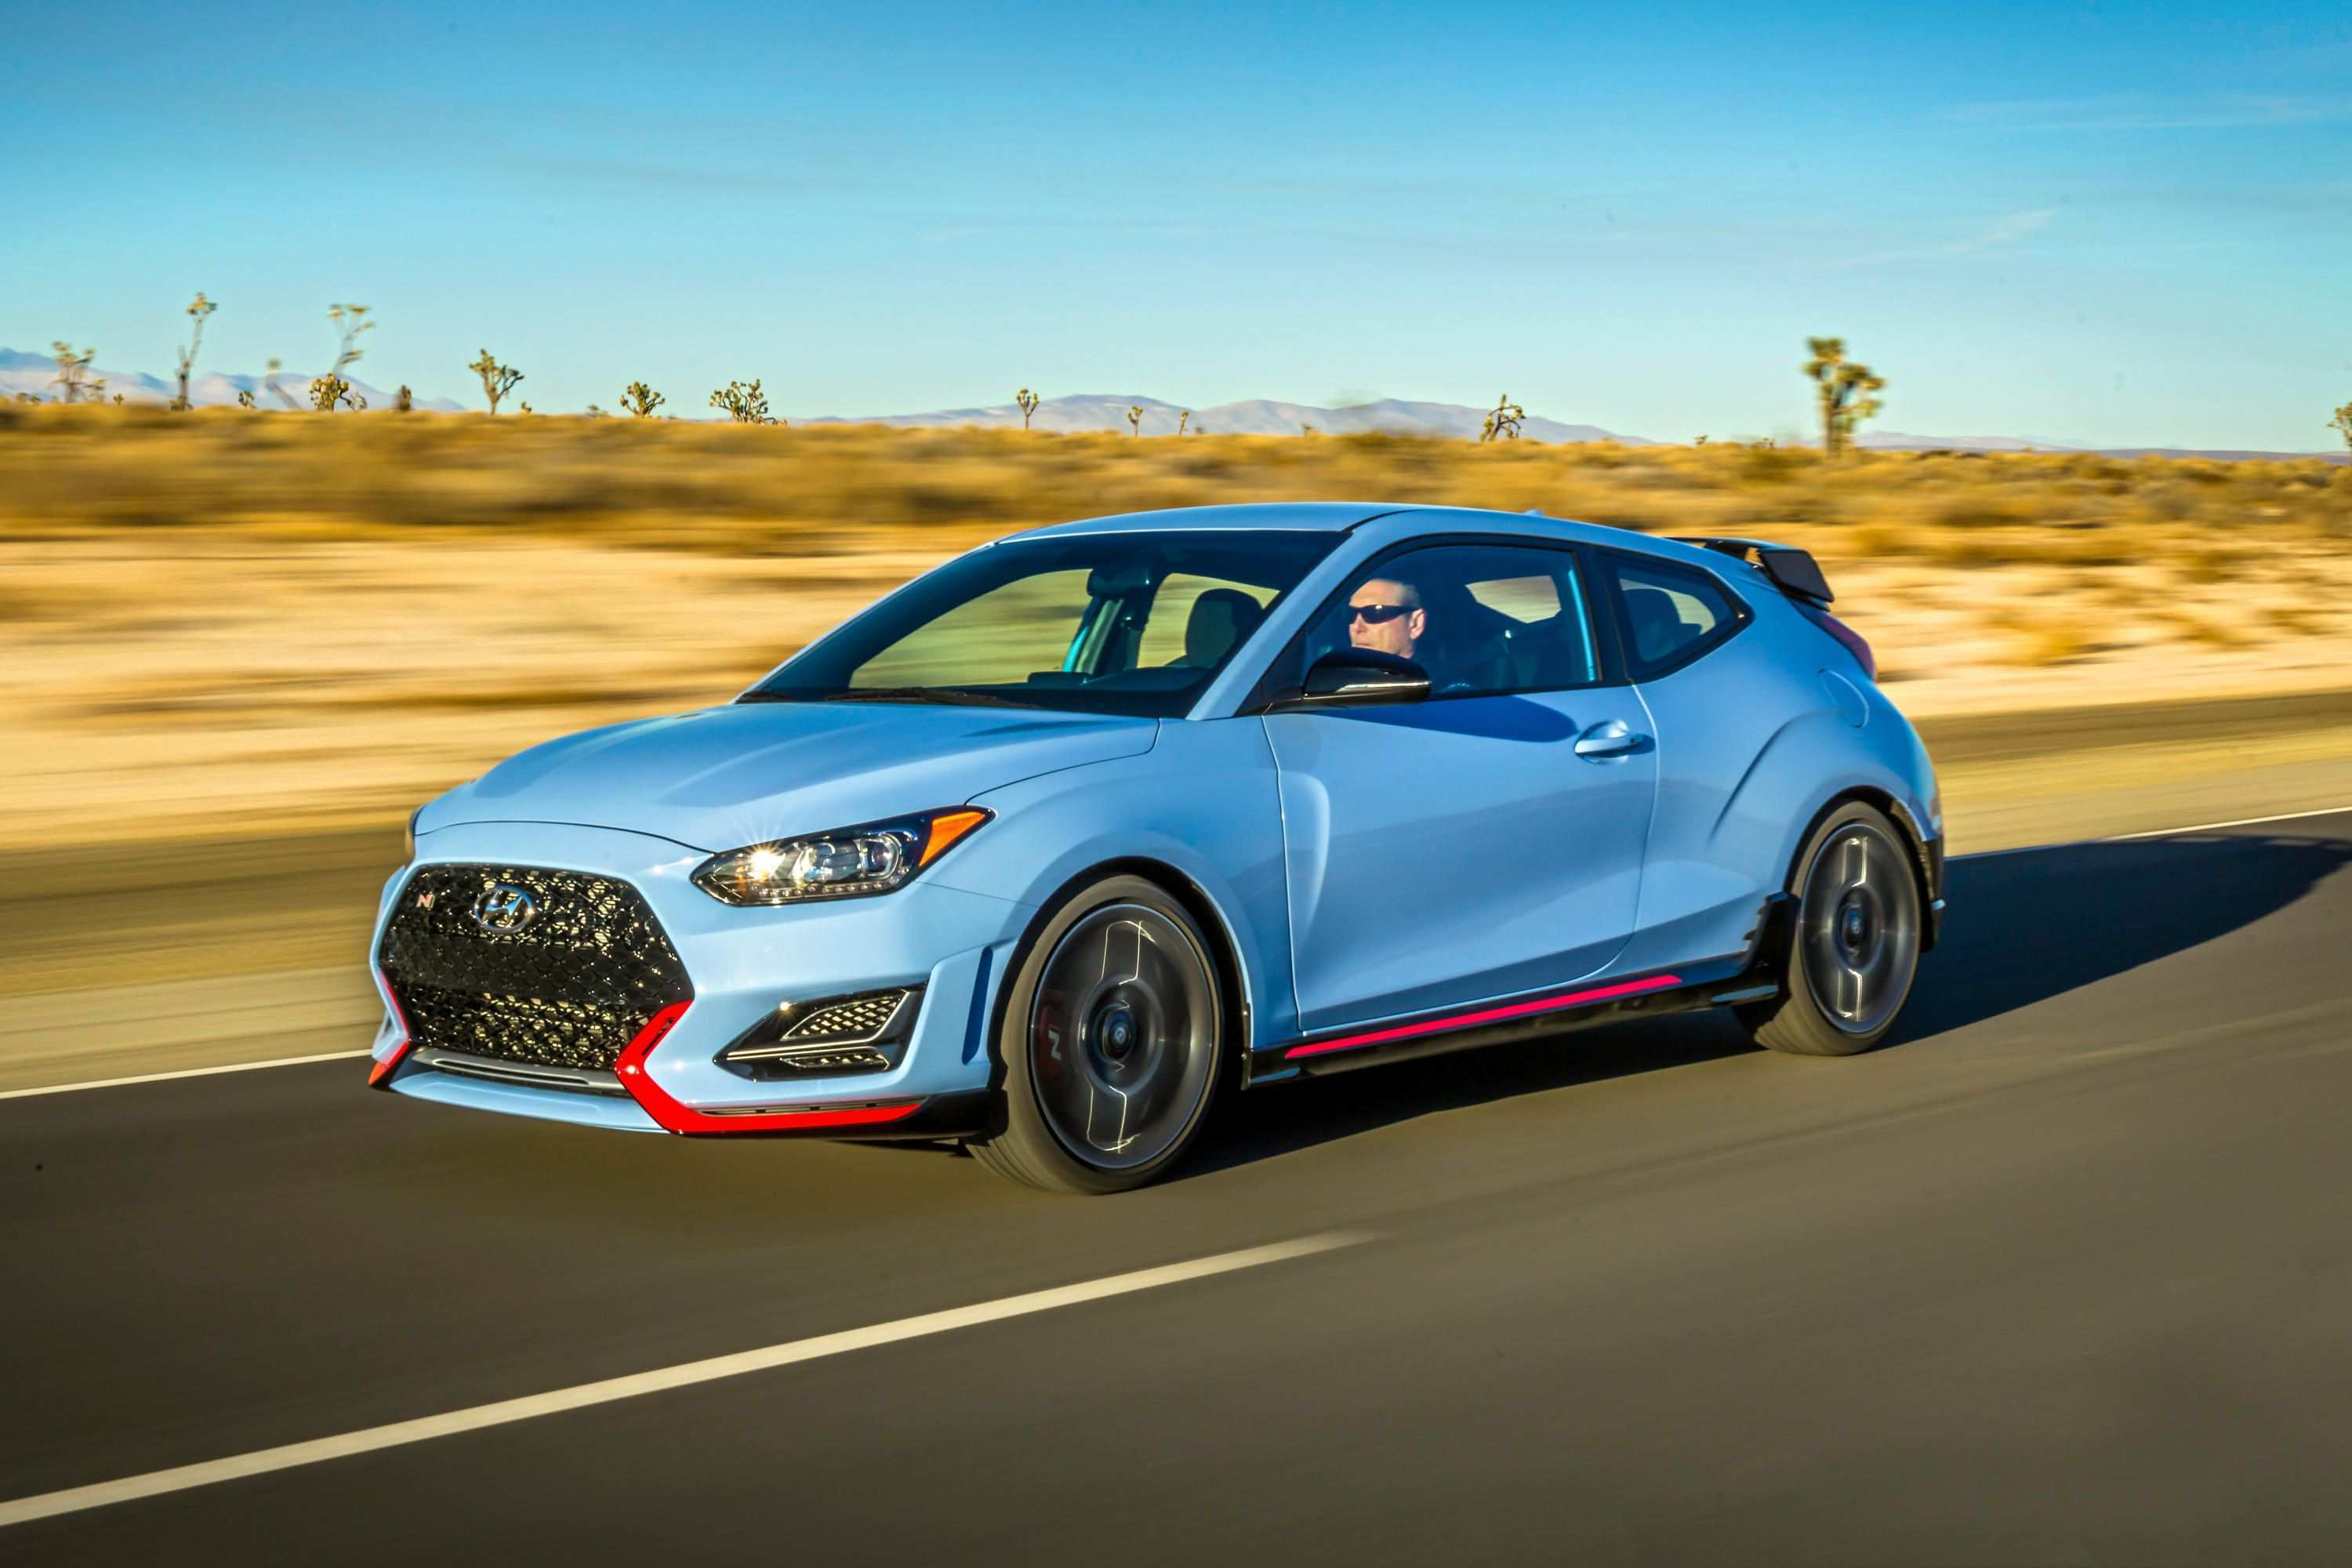 66 All New 2020 Hyundai Veloster Rumors